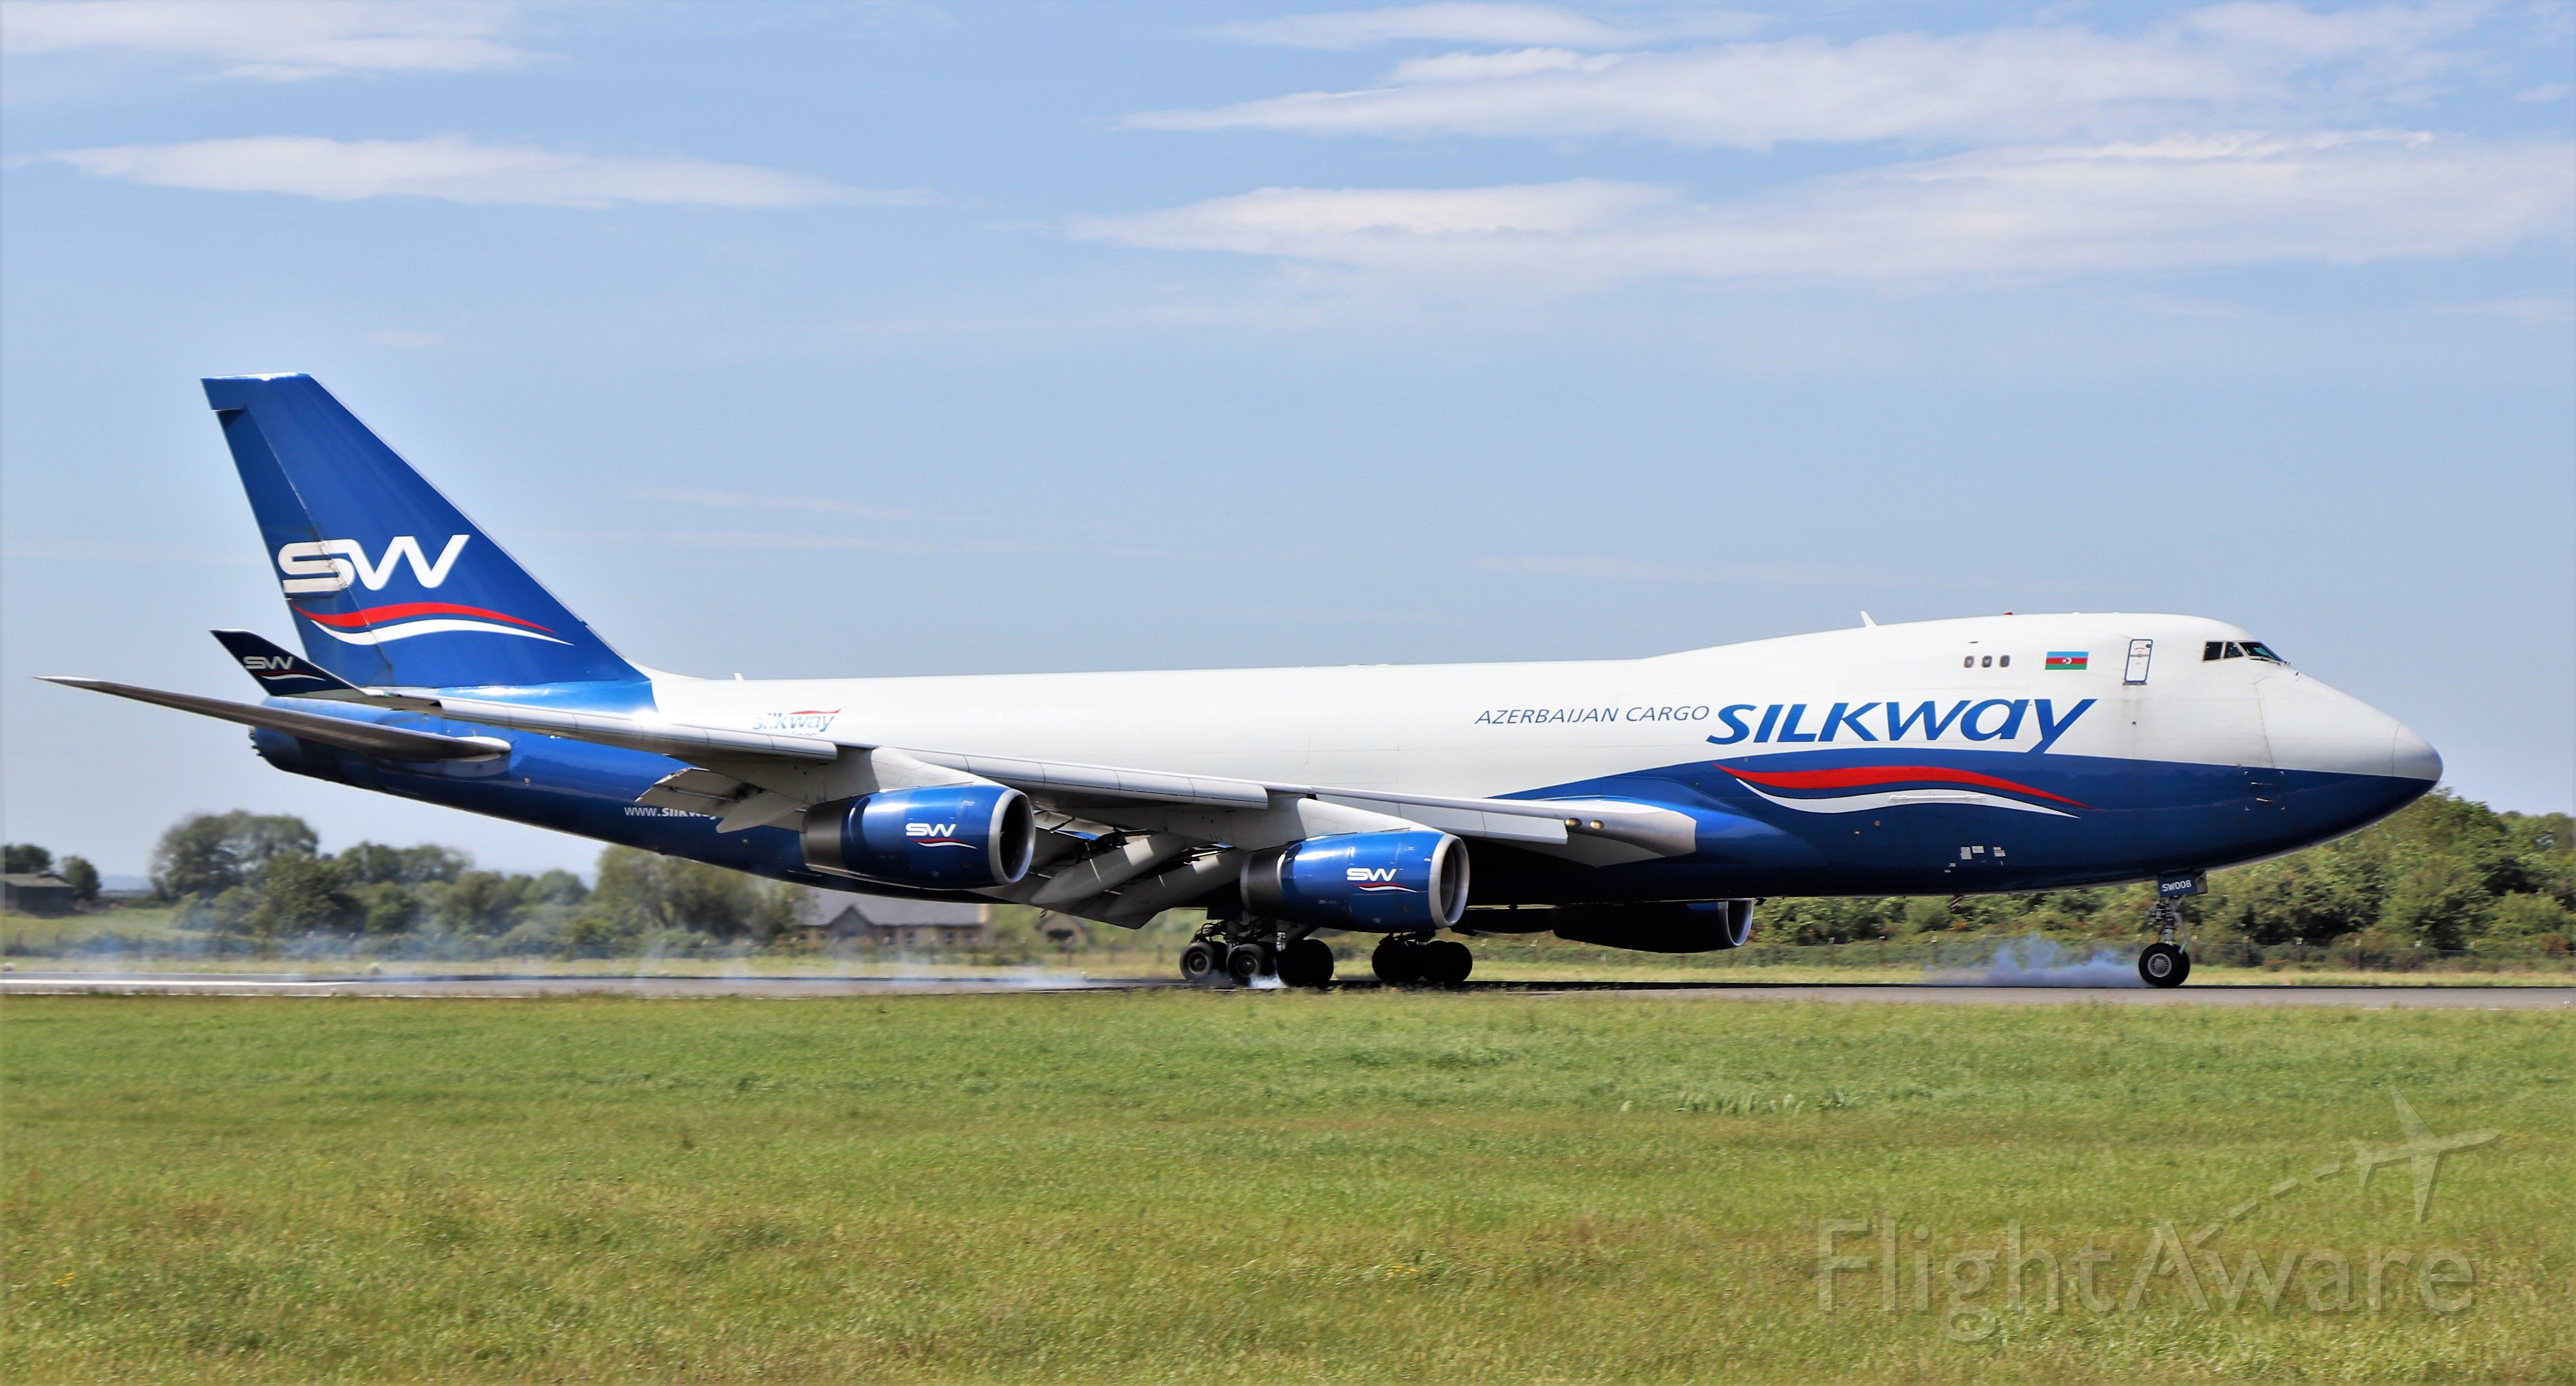 Boeing 747-400 (4KSW008) - silkway west airlines b747-4r7f 4k-sw008 landing at shannon from baku 29/5/20.